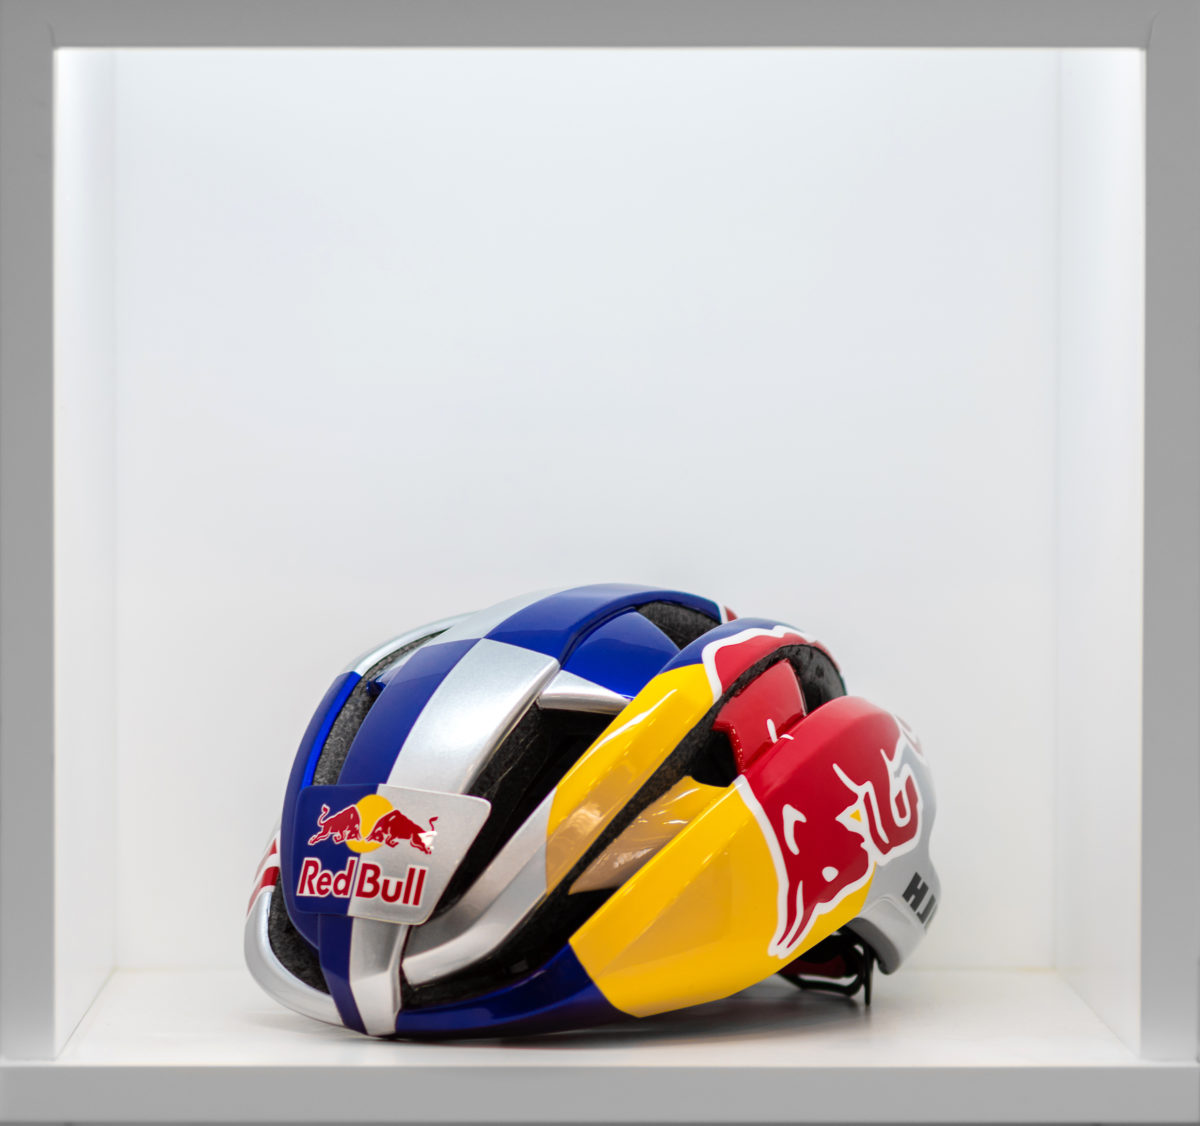 Ibex Red Bull edition for Patrick Seabase